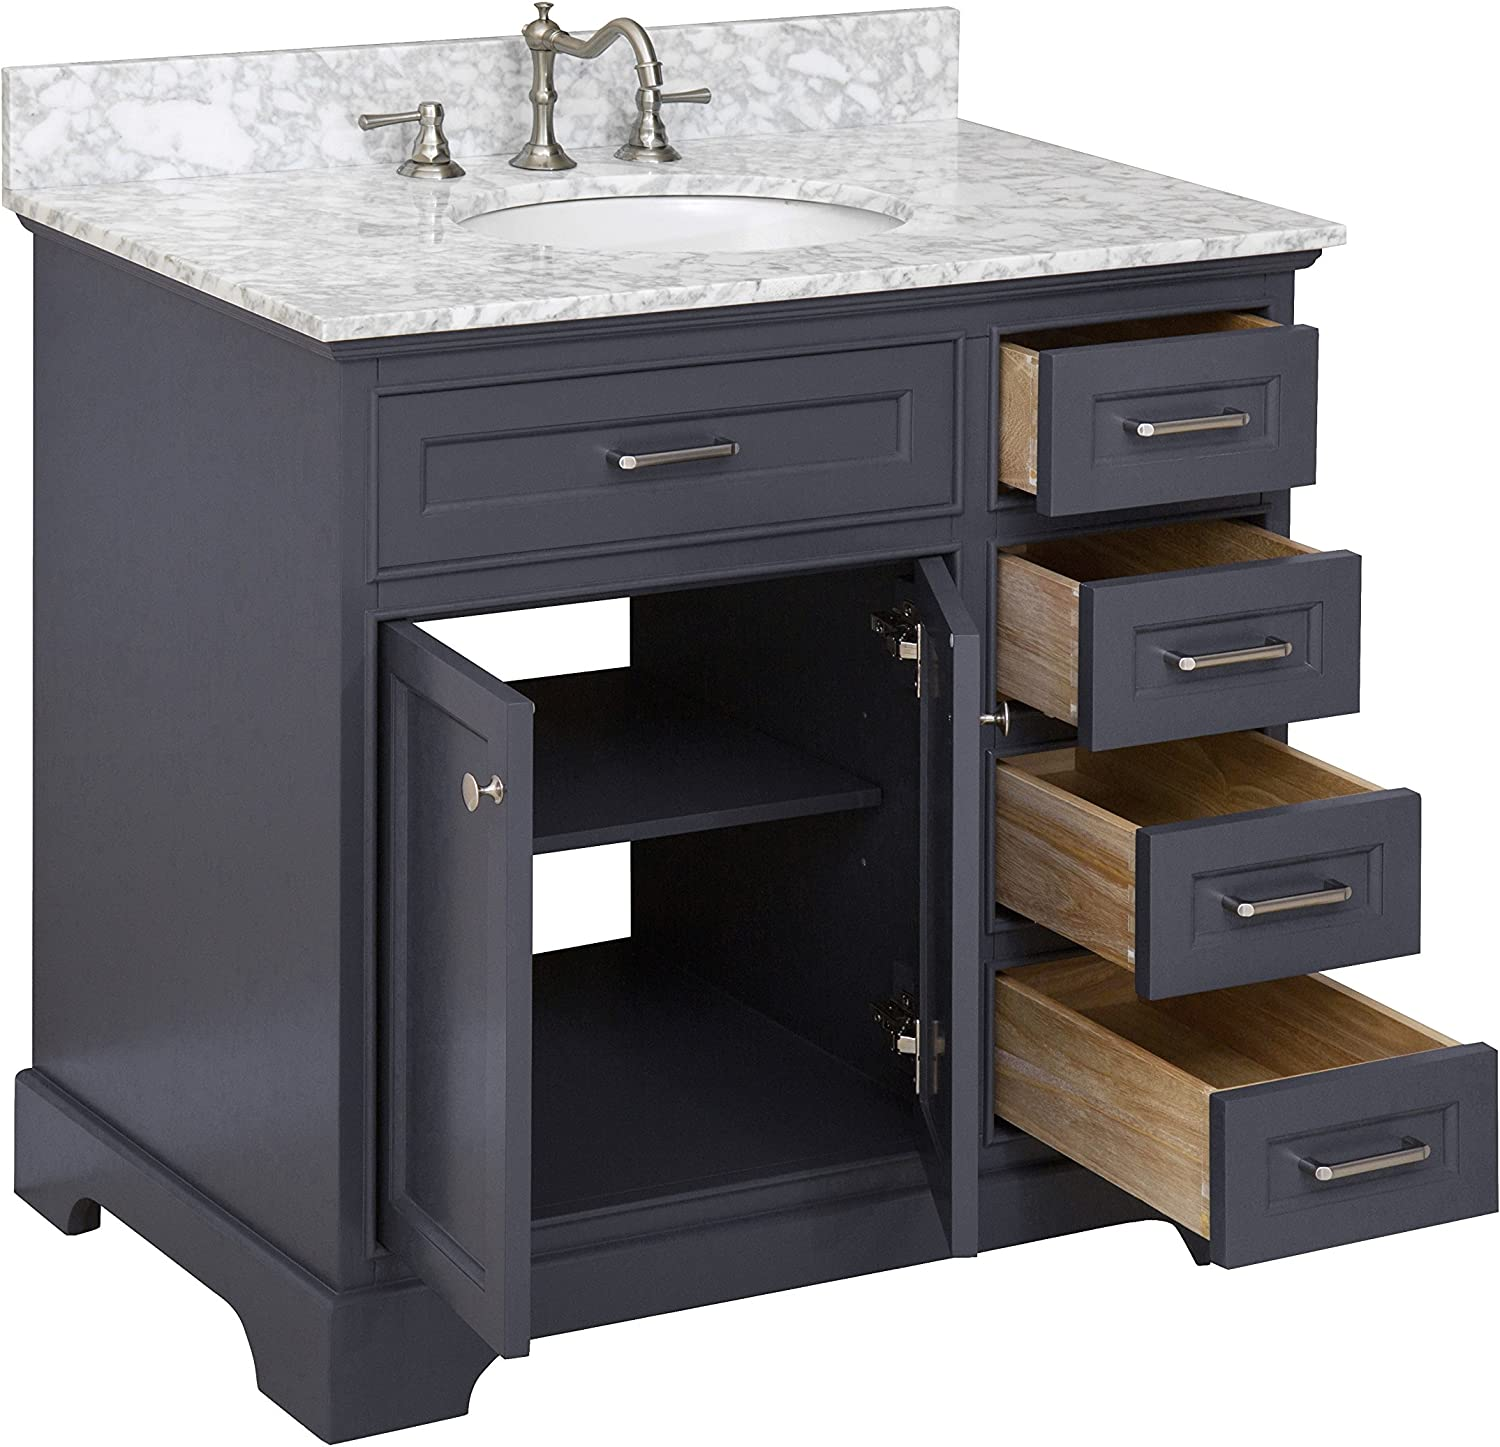 Amazon Com Aria 36 Inch Bathroom Vanity Carrara Charcoal Gray Includes Charcoal Gray Cabinet With Authentic Italian Carrara Marble Countertop And White Ceramic Sink Home Improvement